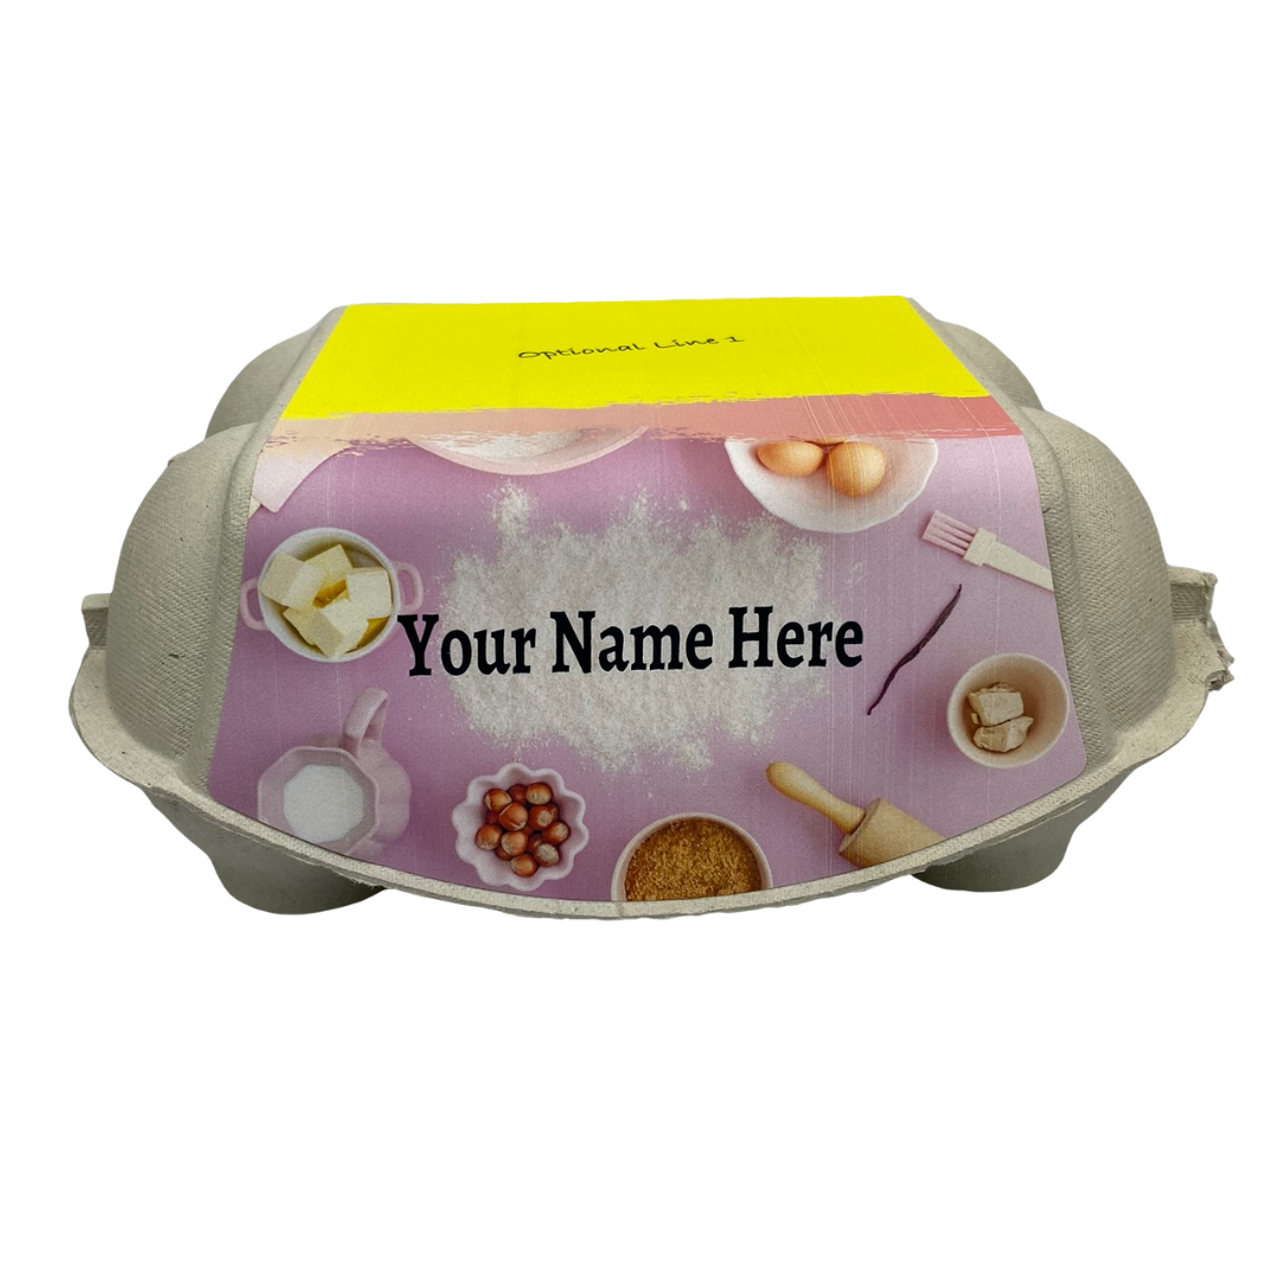 6-Egg iMagic Custom Carton Label - Sweet Treats